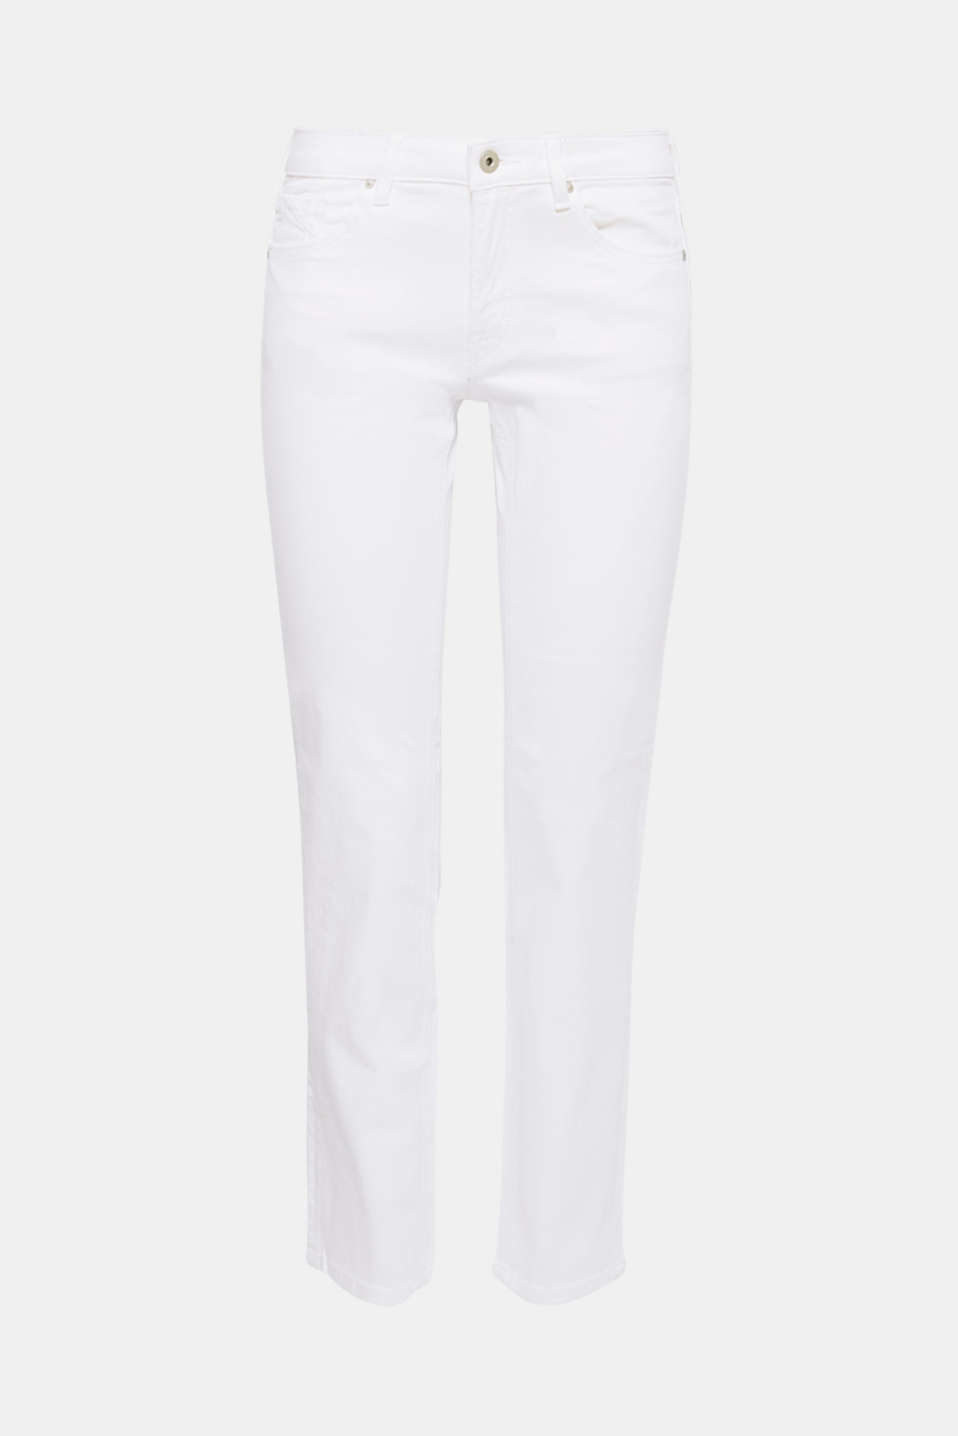 These straight cut stretch jeans in a classic five-pocket design are the perfect wardrobe essential!